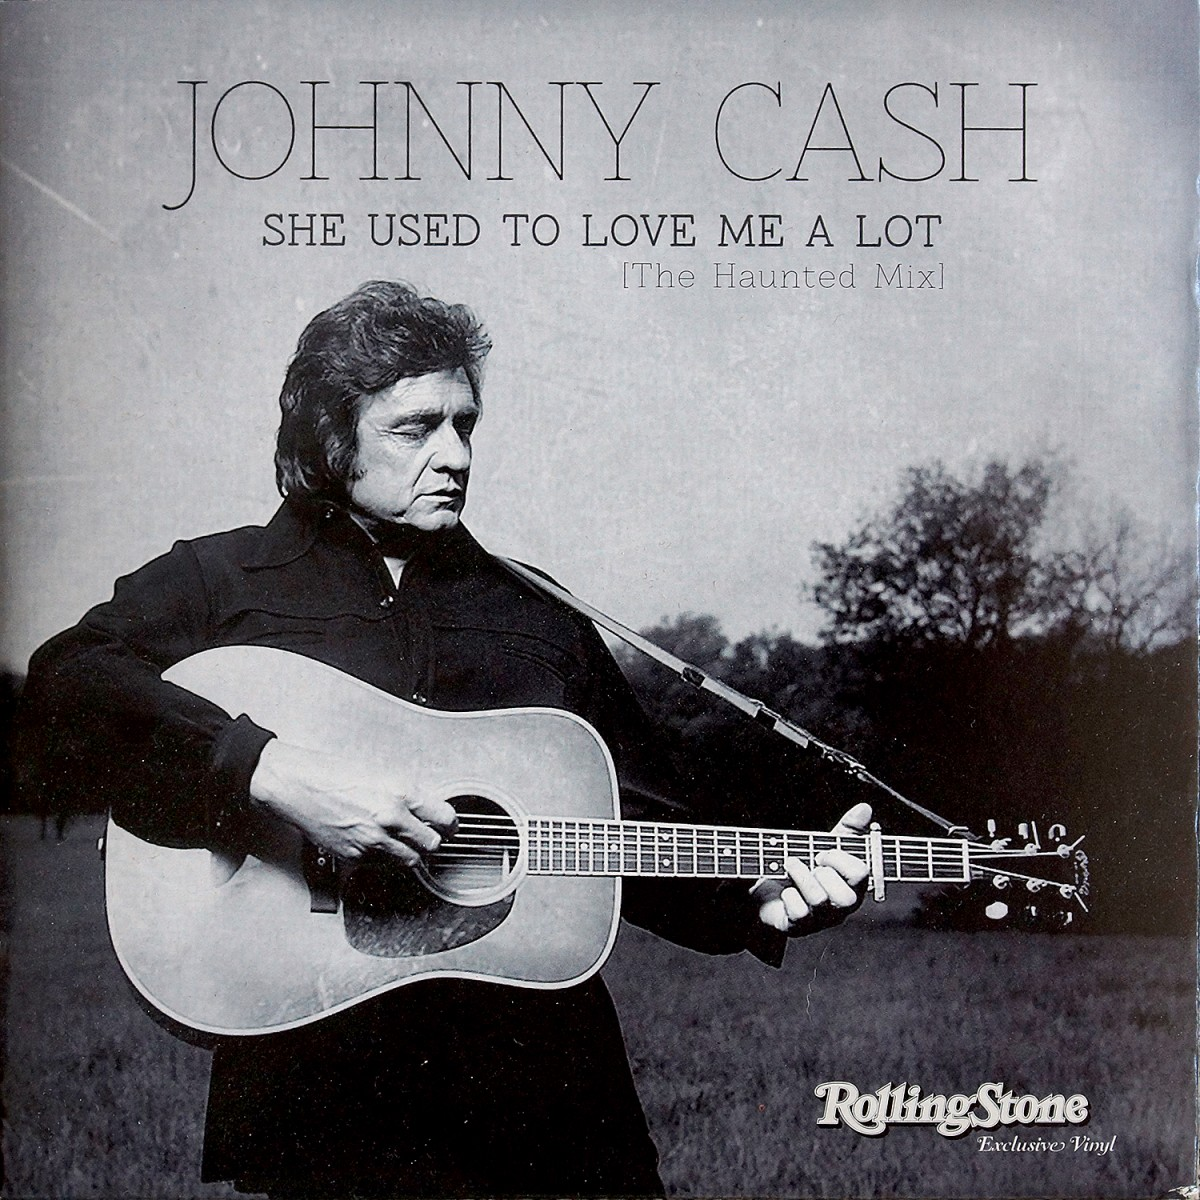 Cash, Johnny: She Used To Love Me A Lot [The Hauntted Mix] (Rolling Stone Exclusive Vinyl) (2014)